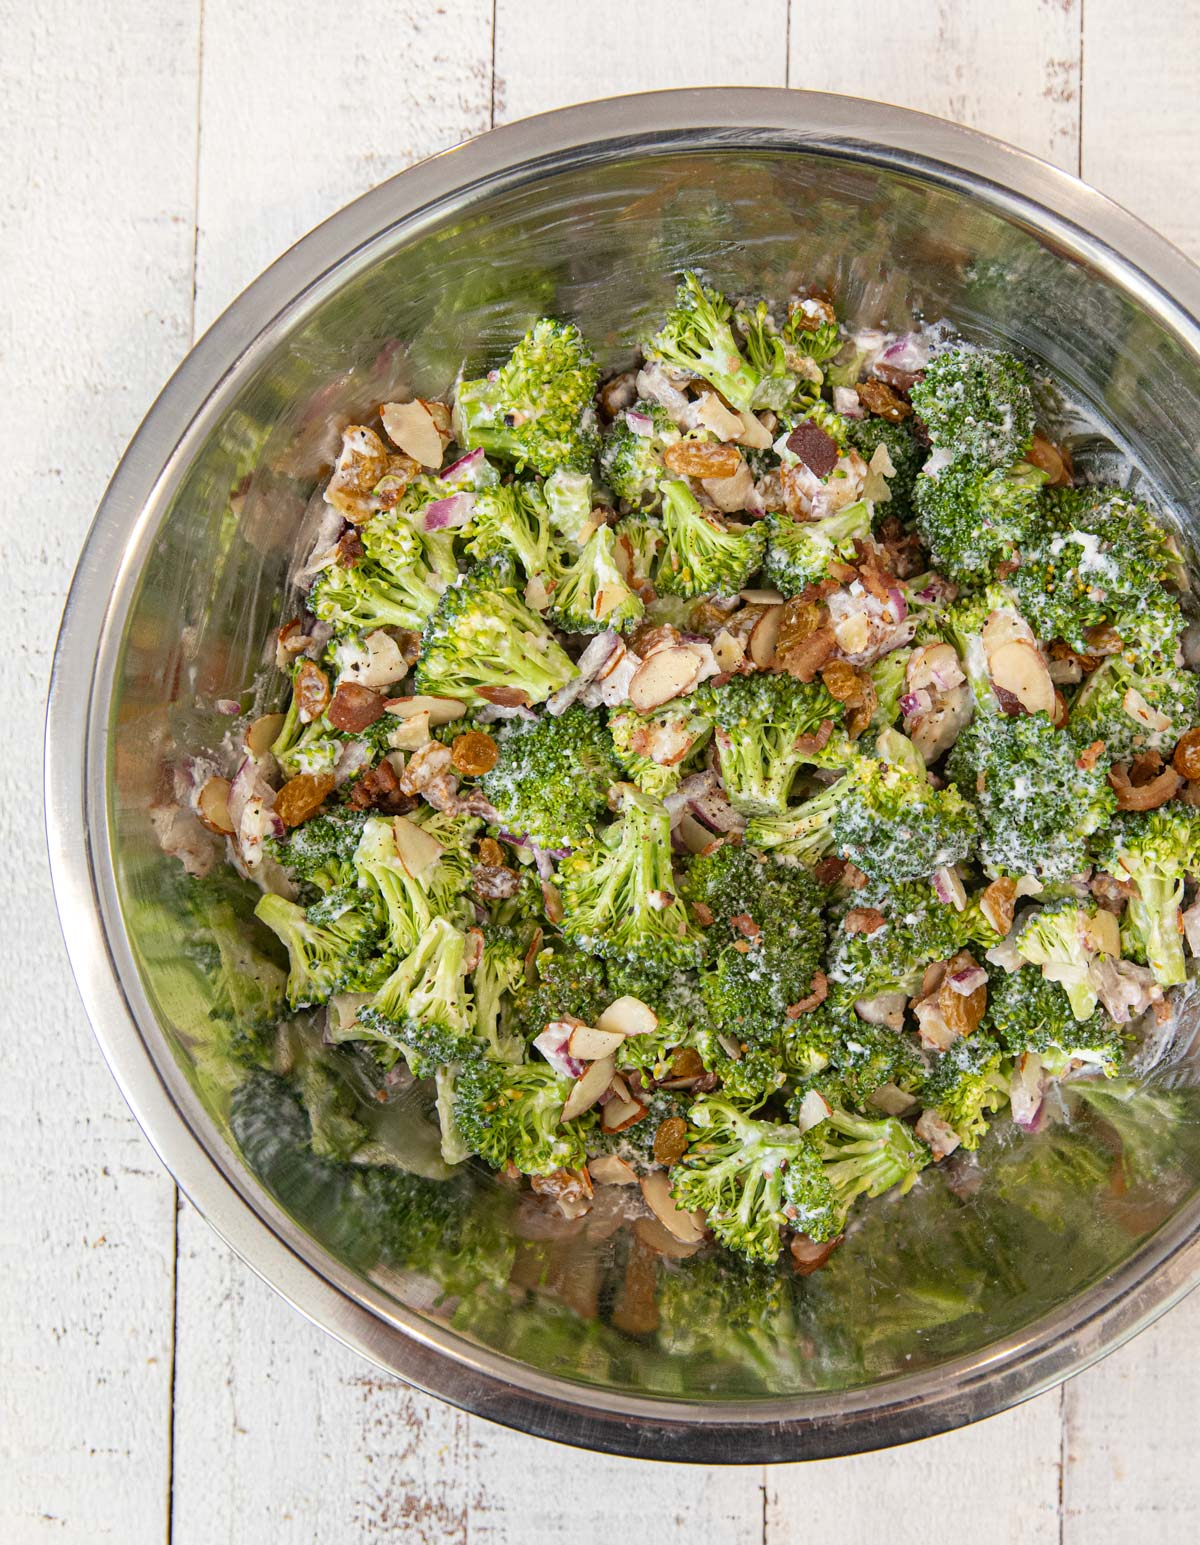 Healthy Broccoli Salad in metal mixing bowl